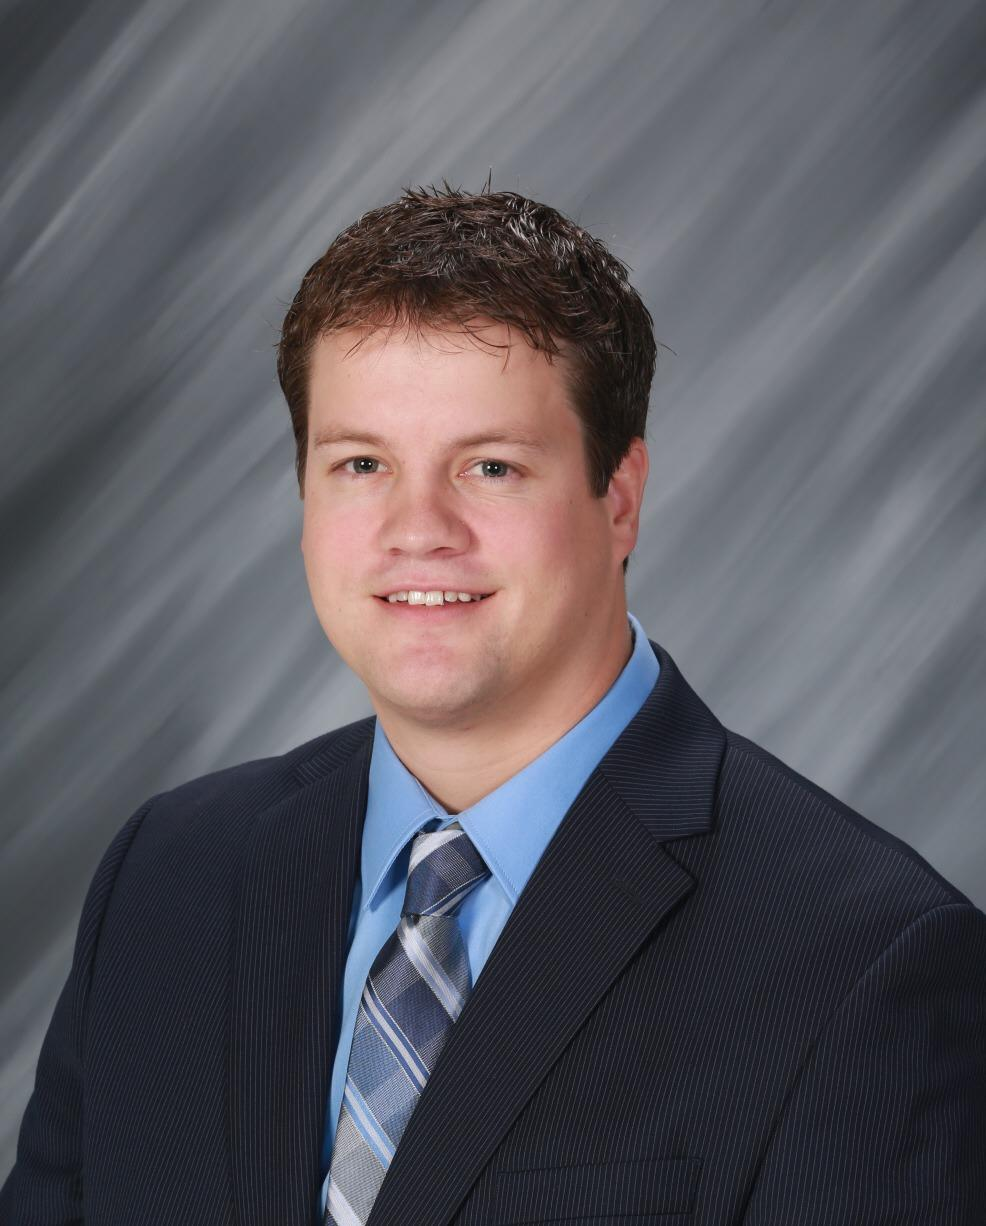 Jake Arends - Mortgage Loan Officer - West Des Moines, IA 50266 - (515)289-5550 | ShowMeLocal.com